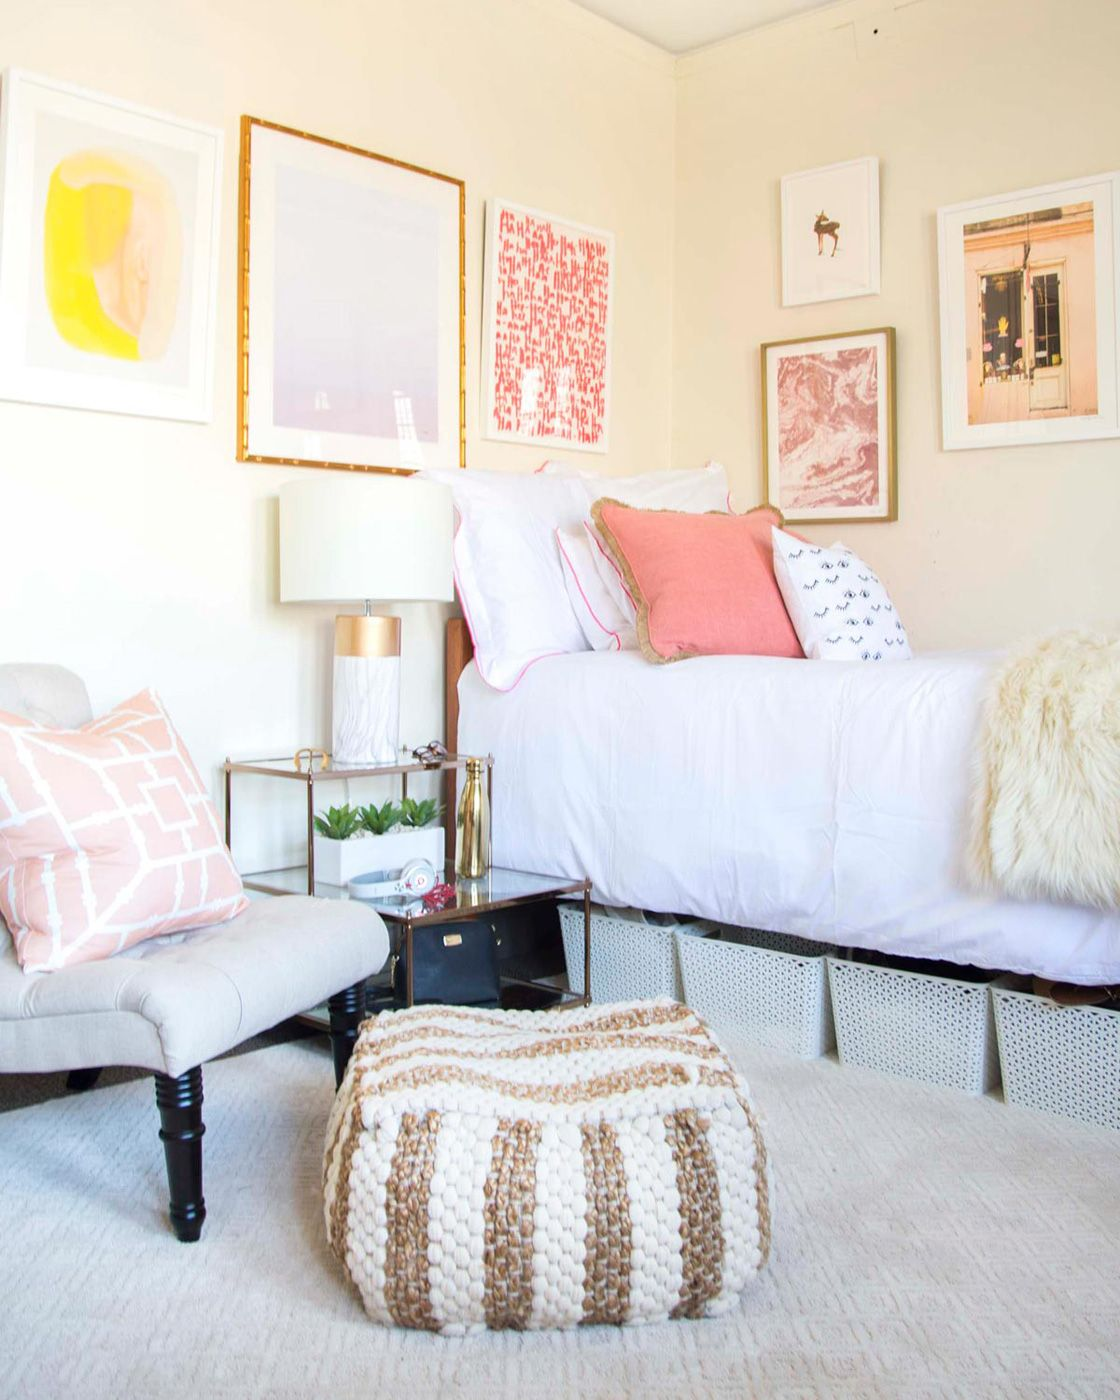 Bedroom wall art with designer thou swell in blush and blue dorm